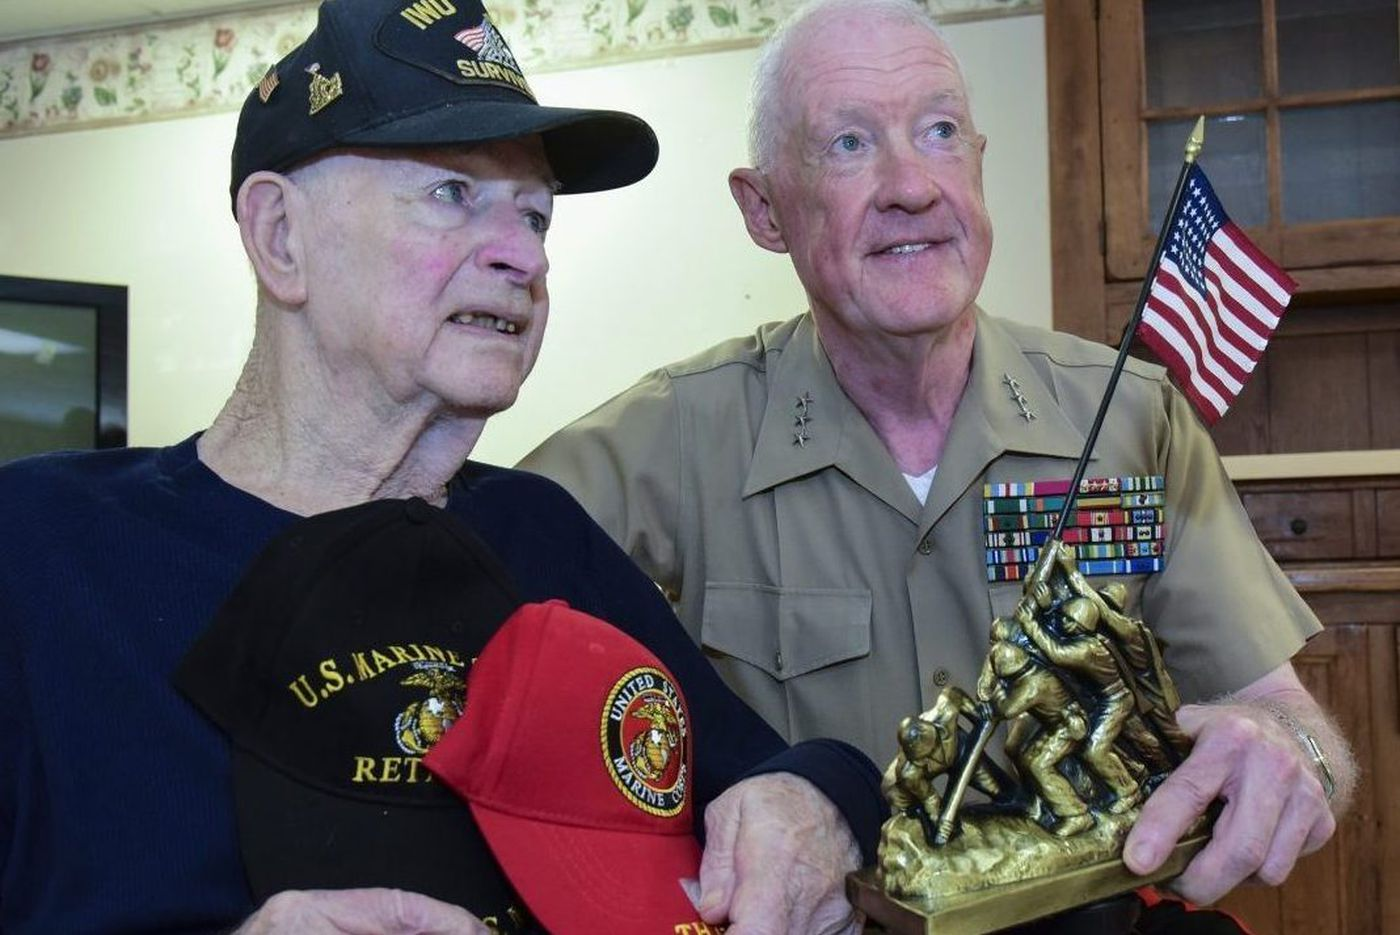 Iwo Jima vet in hospice care, 93, honored by Marine Corps general